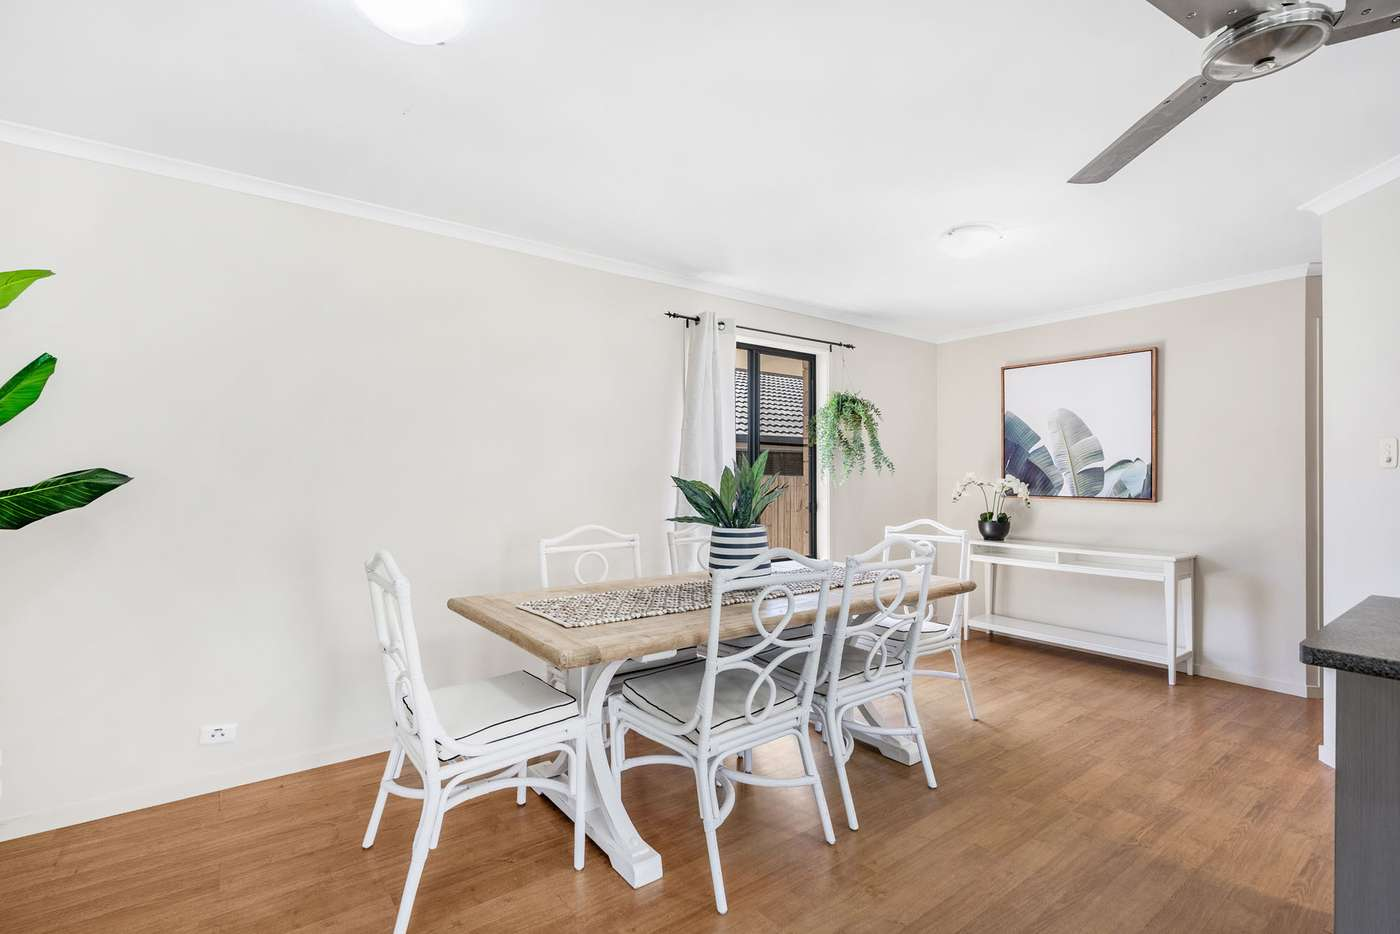 Fifth view of Homely house listing, 48a Hardy Road, Birkdale QLD 4159